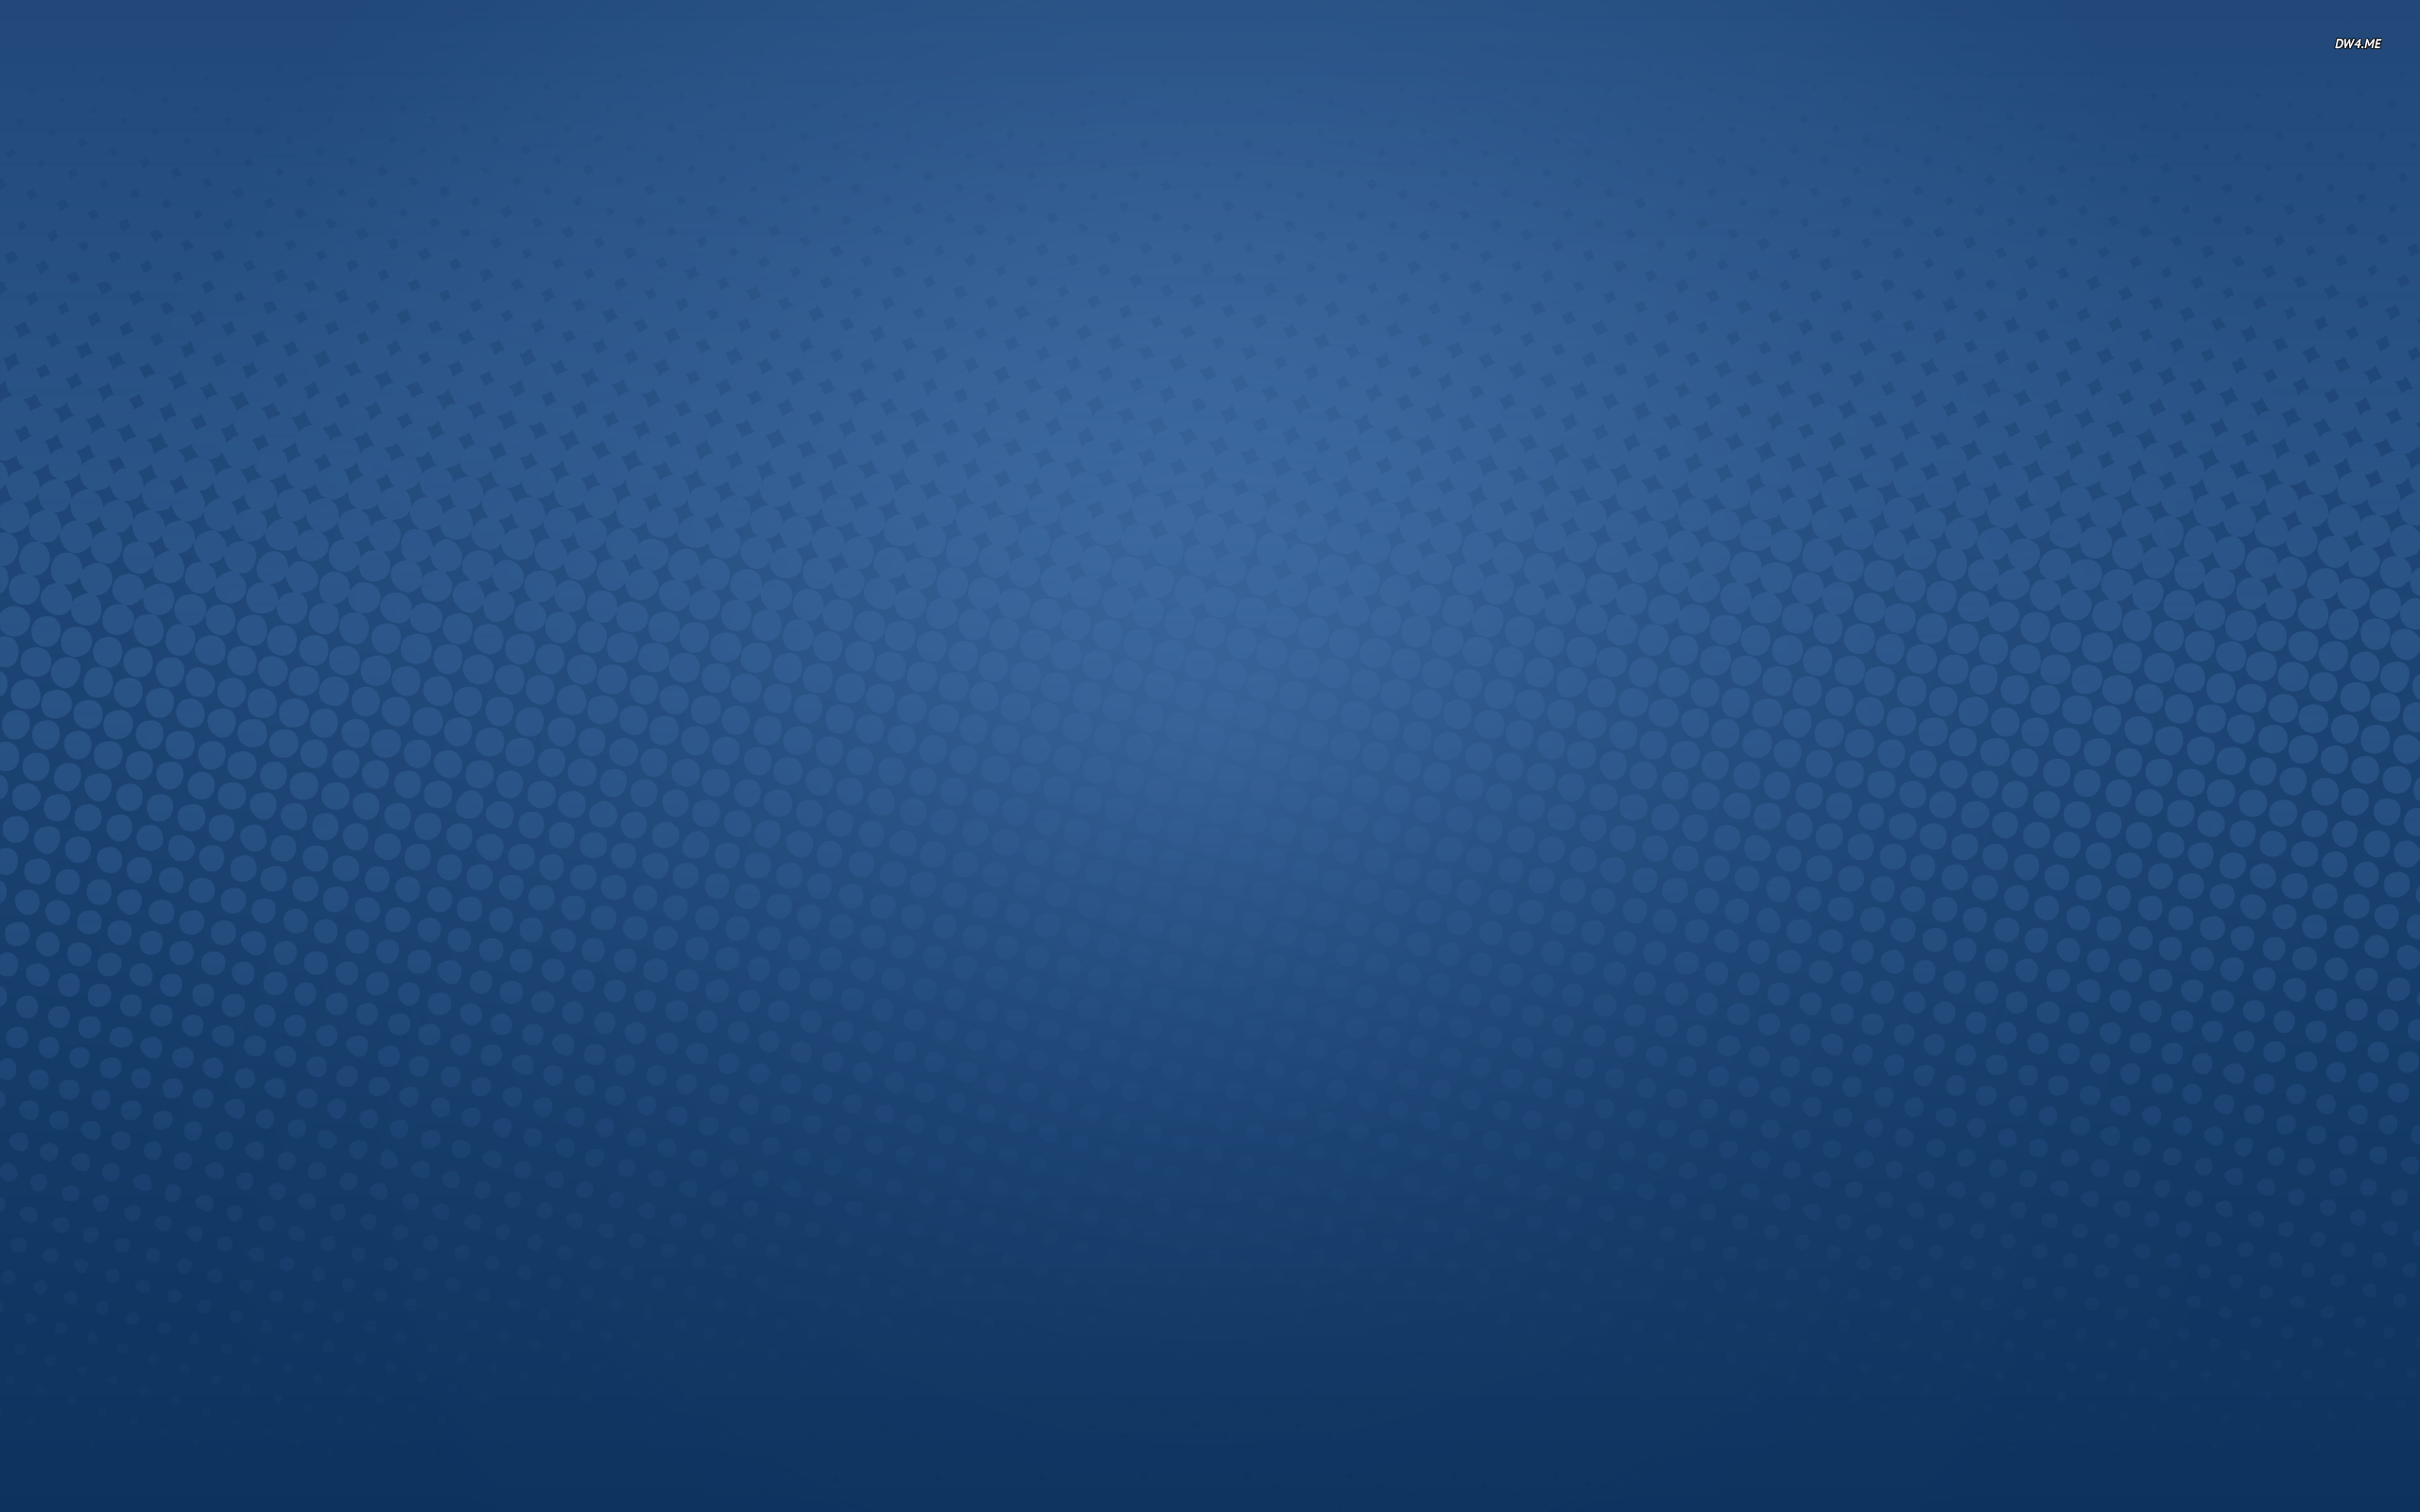 Navy Blue Wallpapers 2560x1600